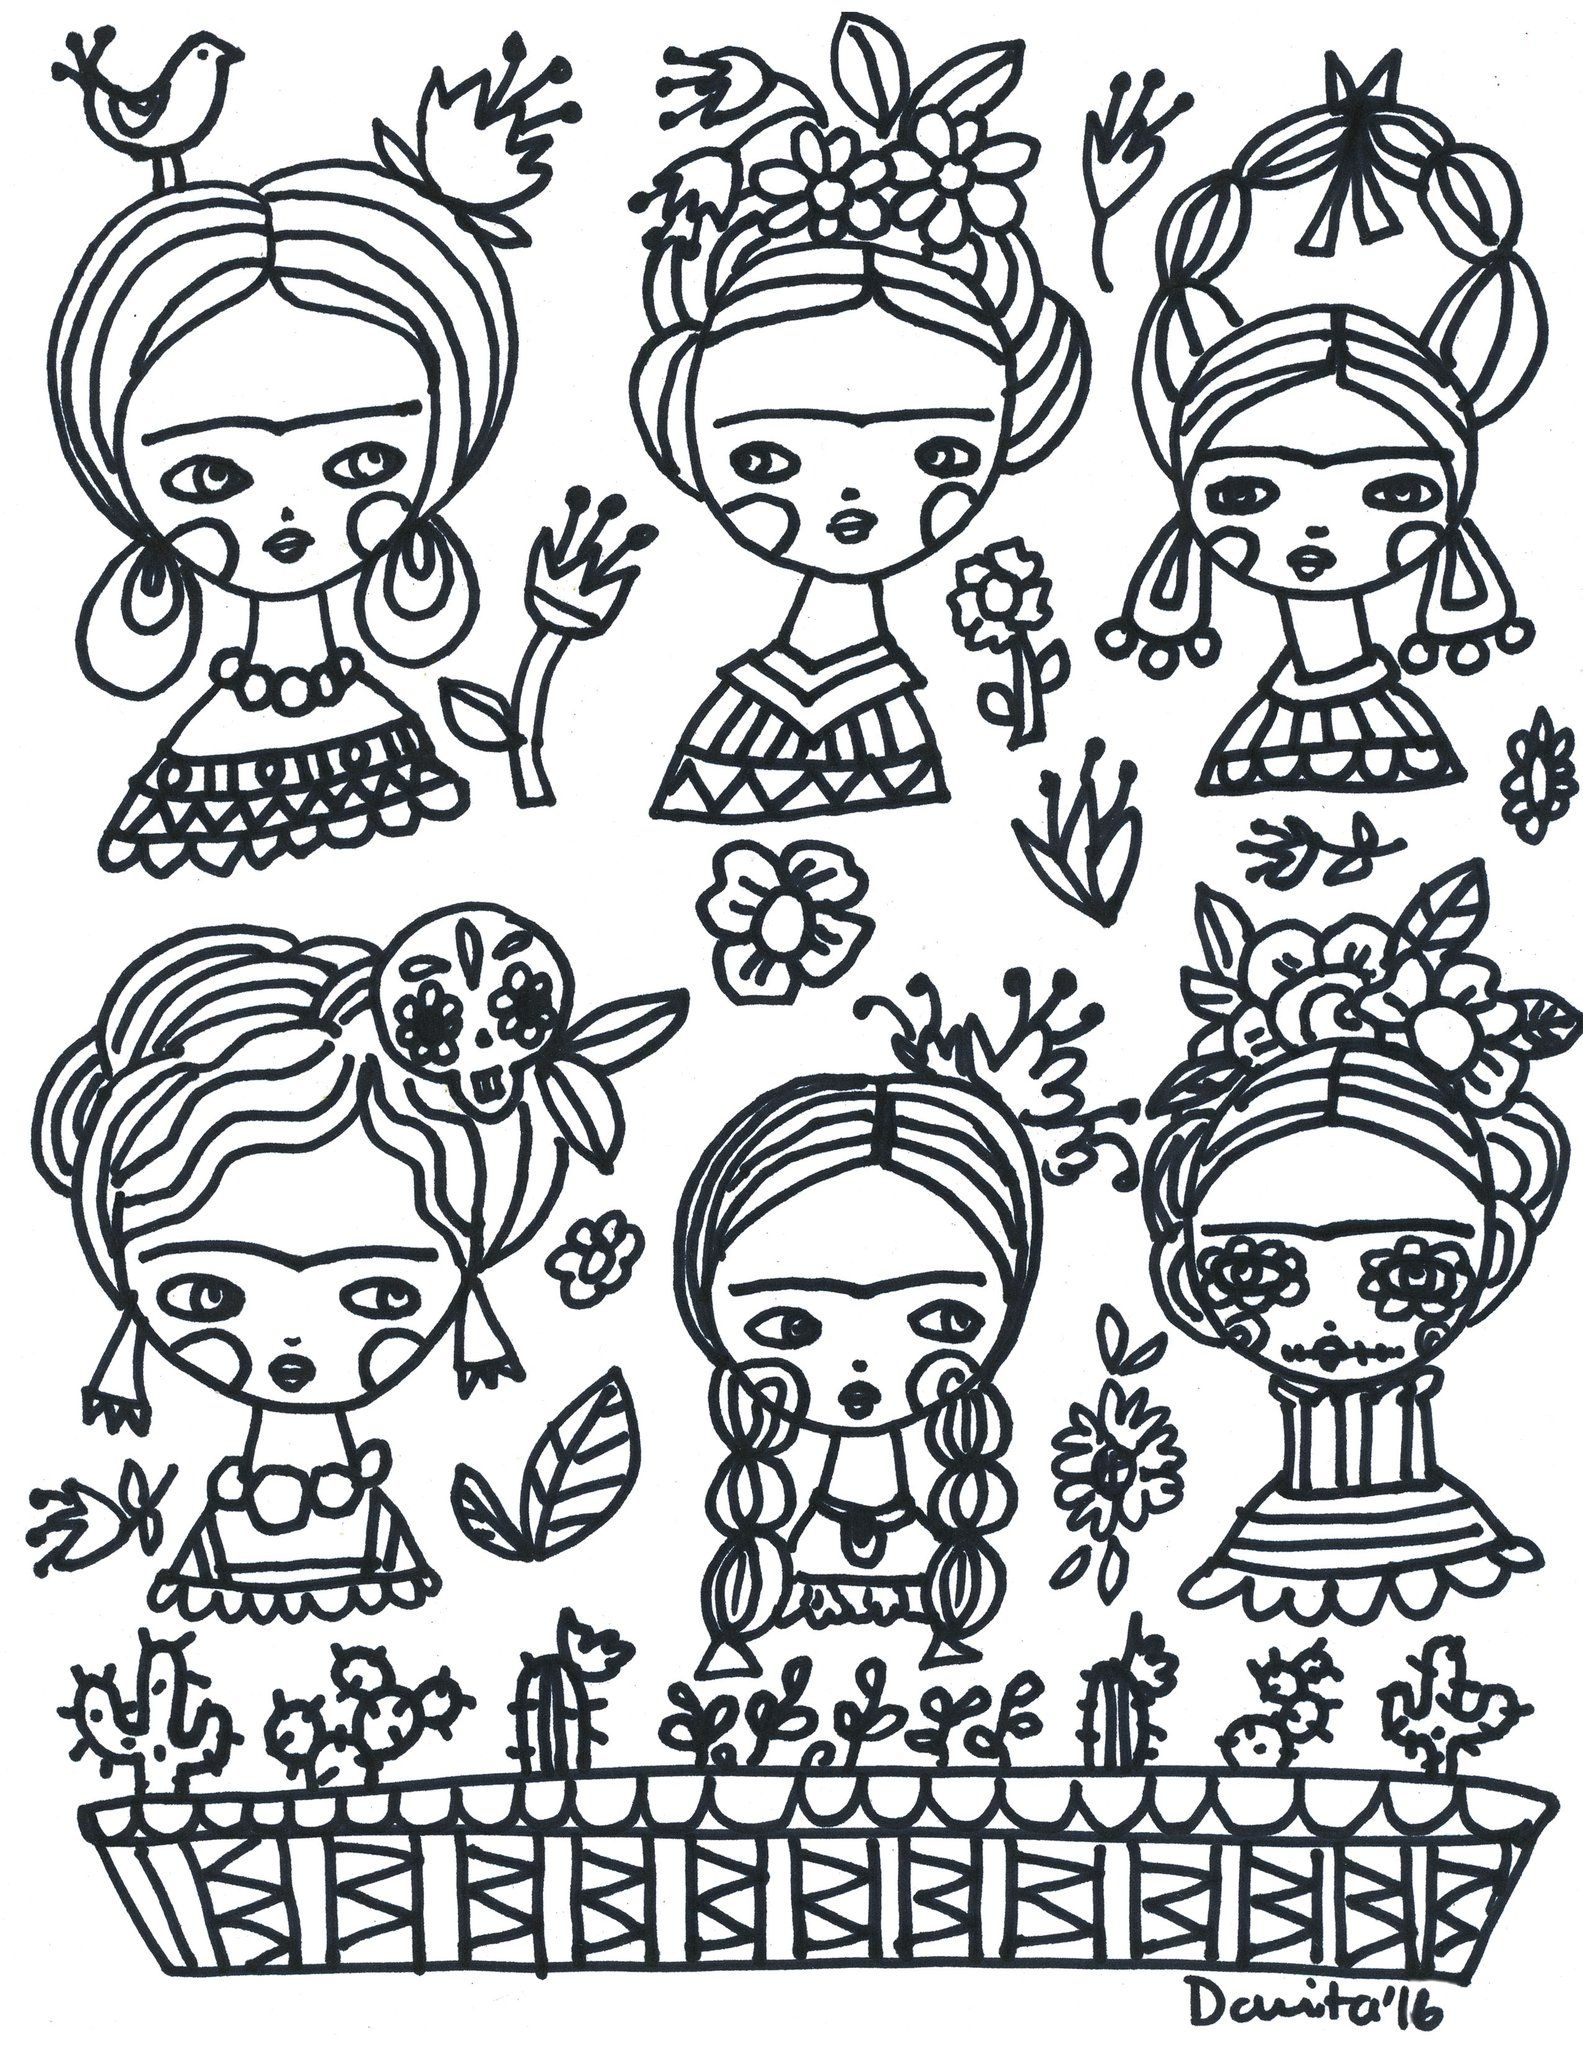 Online coloring book creator - A Frida Kahlo Inspired Coloring Book Page Created By International Mixed Media Artist And Doll